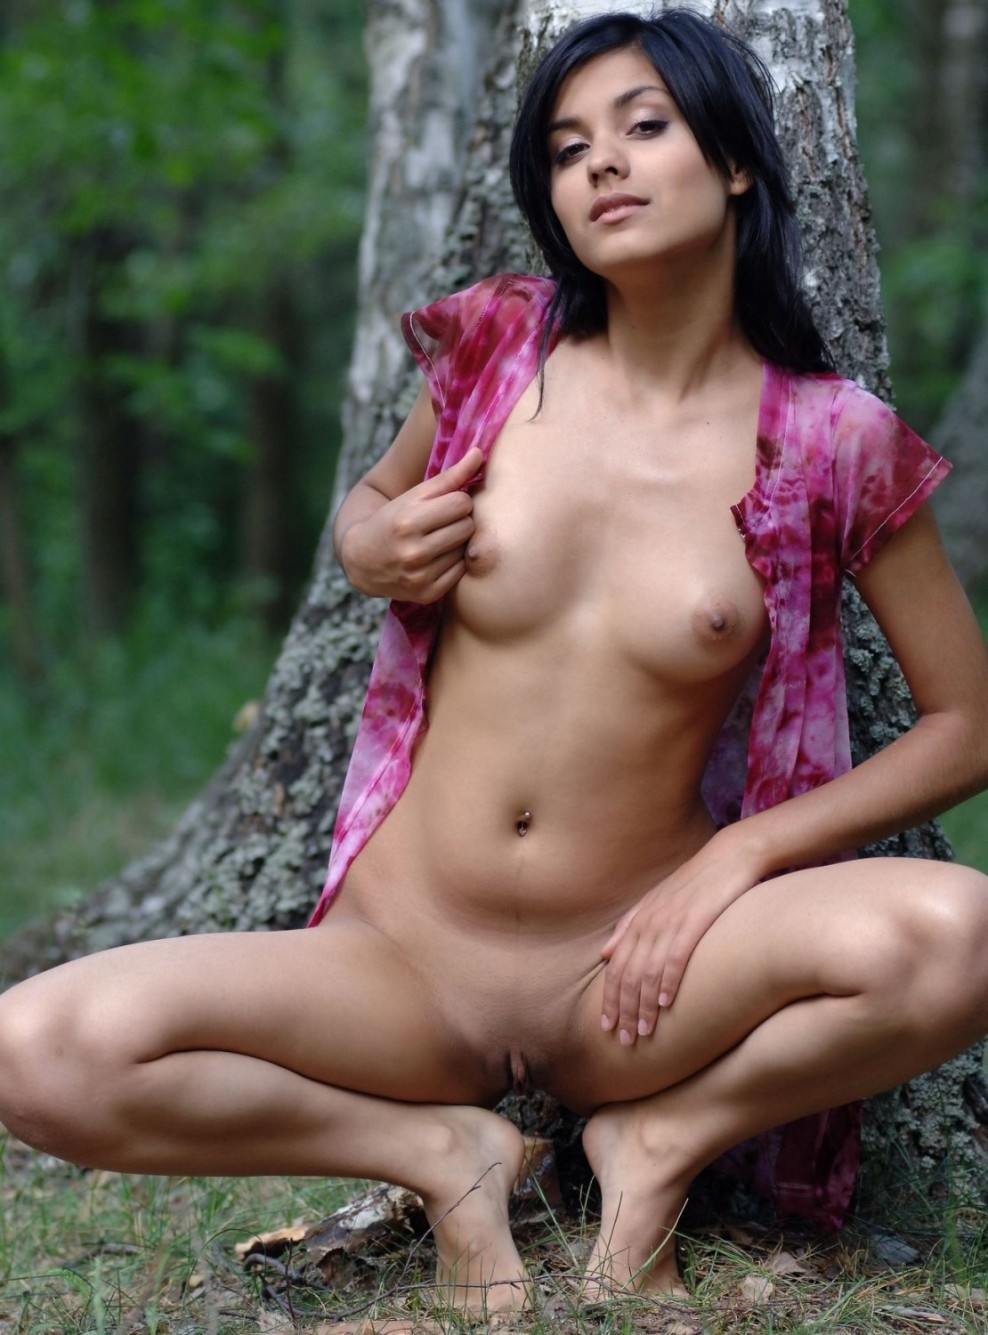 Commit Pakistan women beautiful nude right!